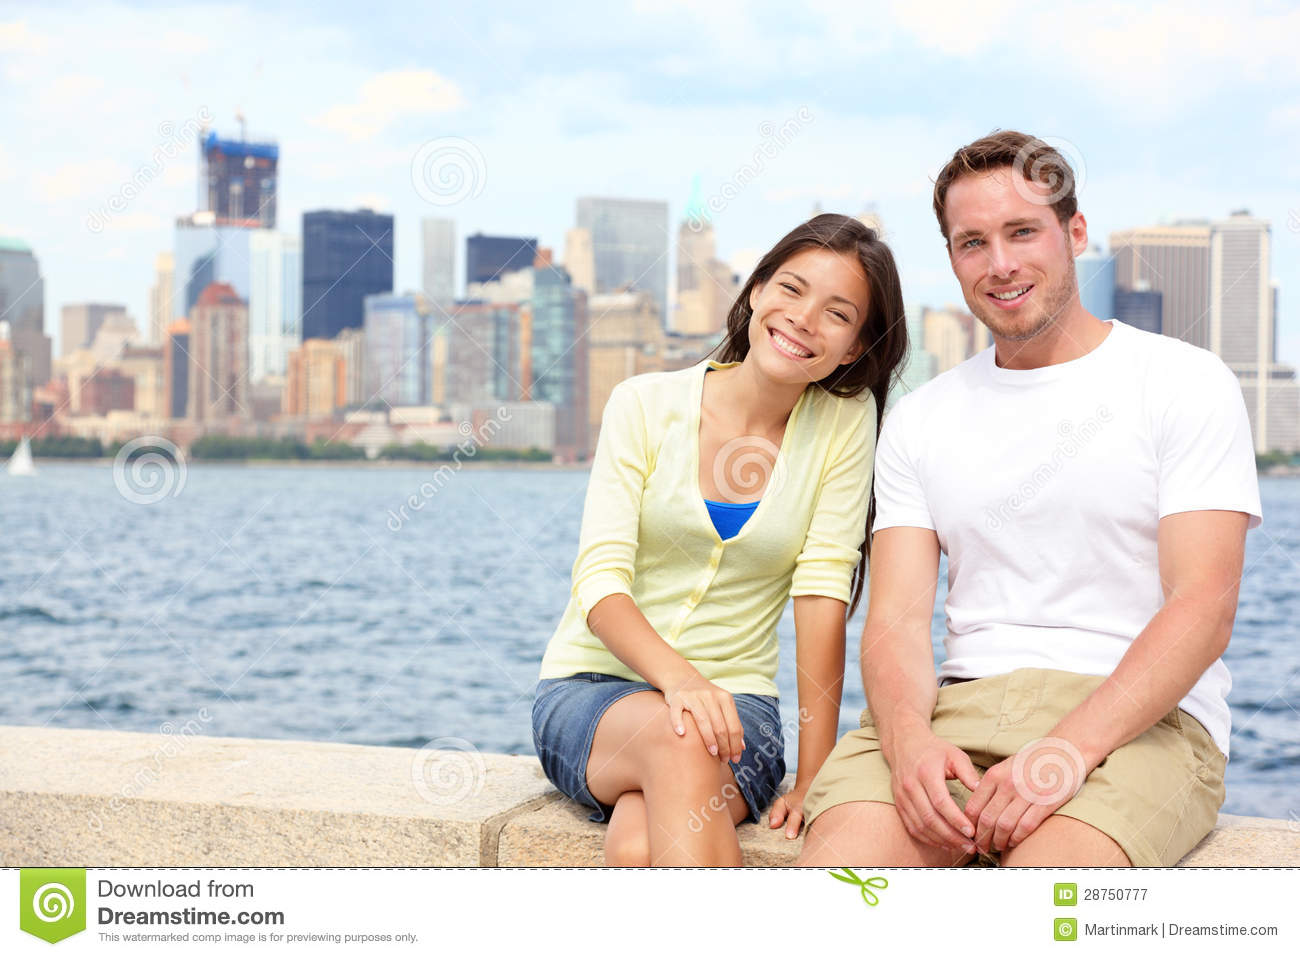 Online dating in new york city